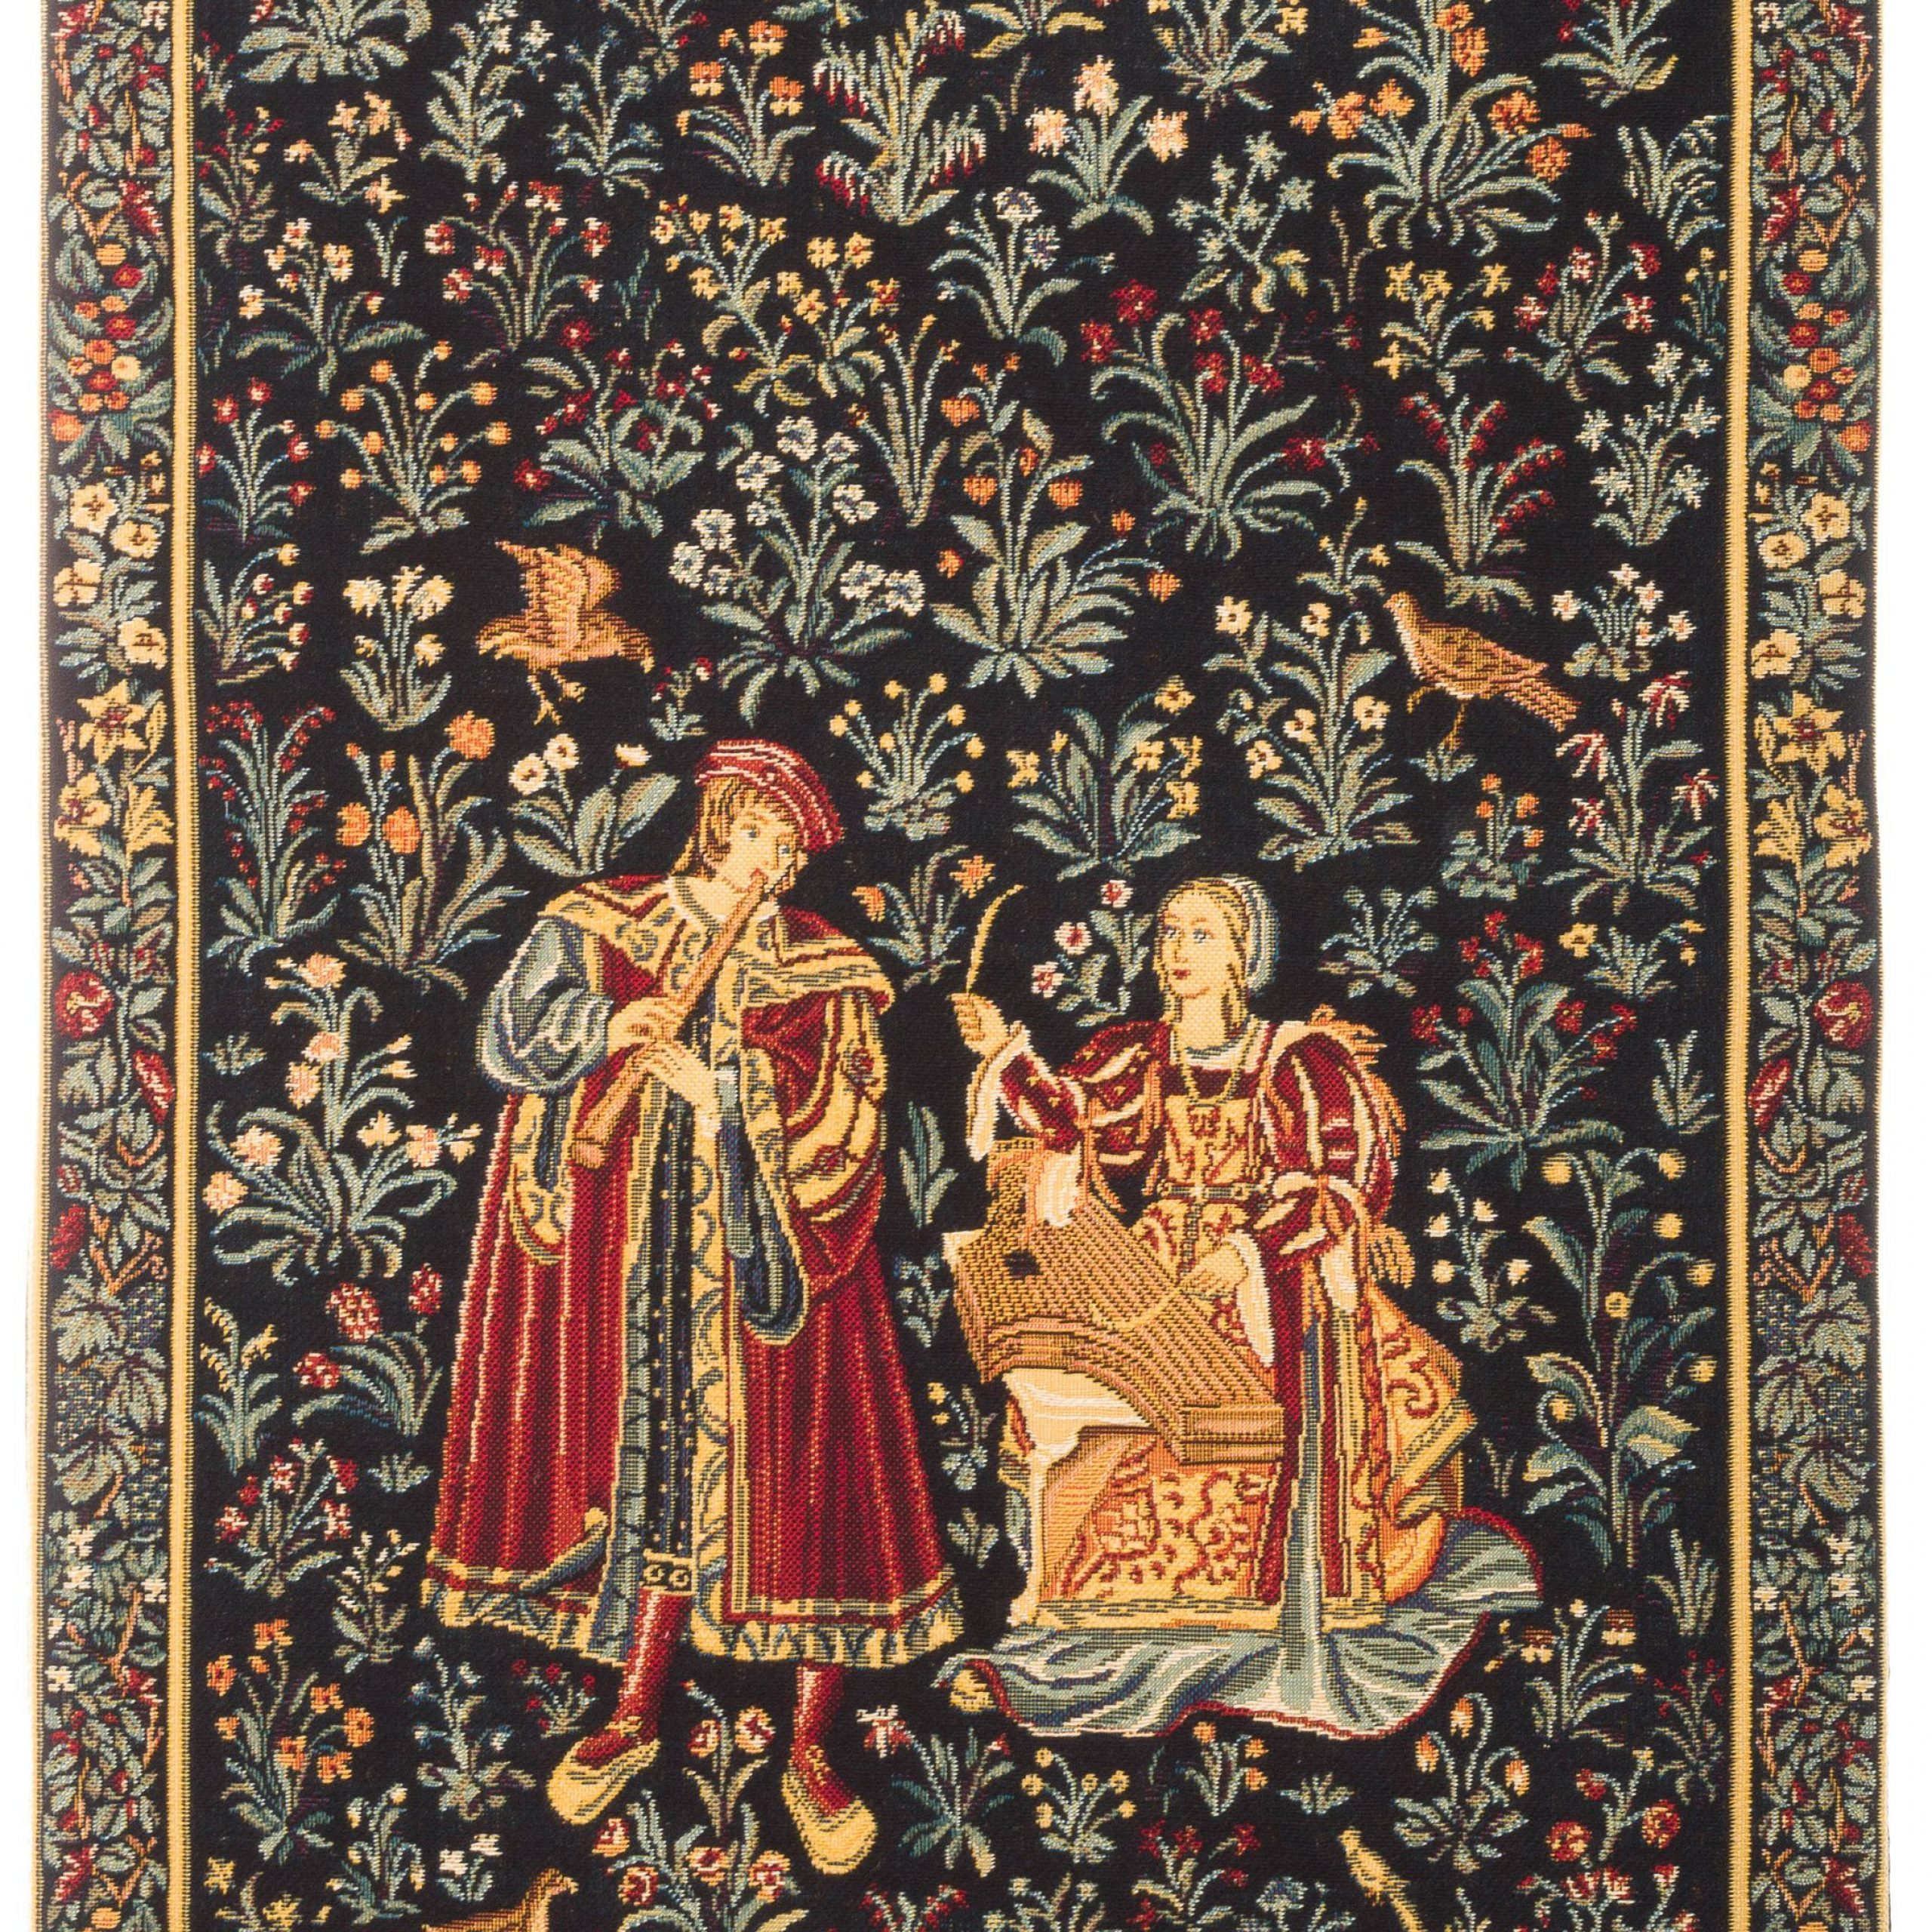 Medieval Tapestry Wall Hanging Concert Scene Millefleurs Throughout Latest Blended Fabric Italian Wall Hangings (View 8 of 20)